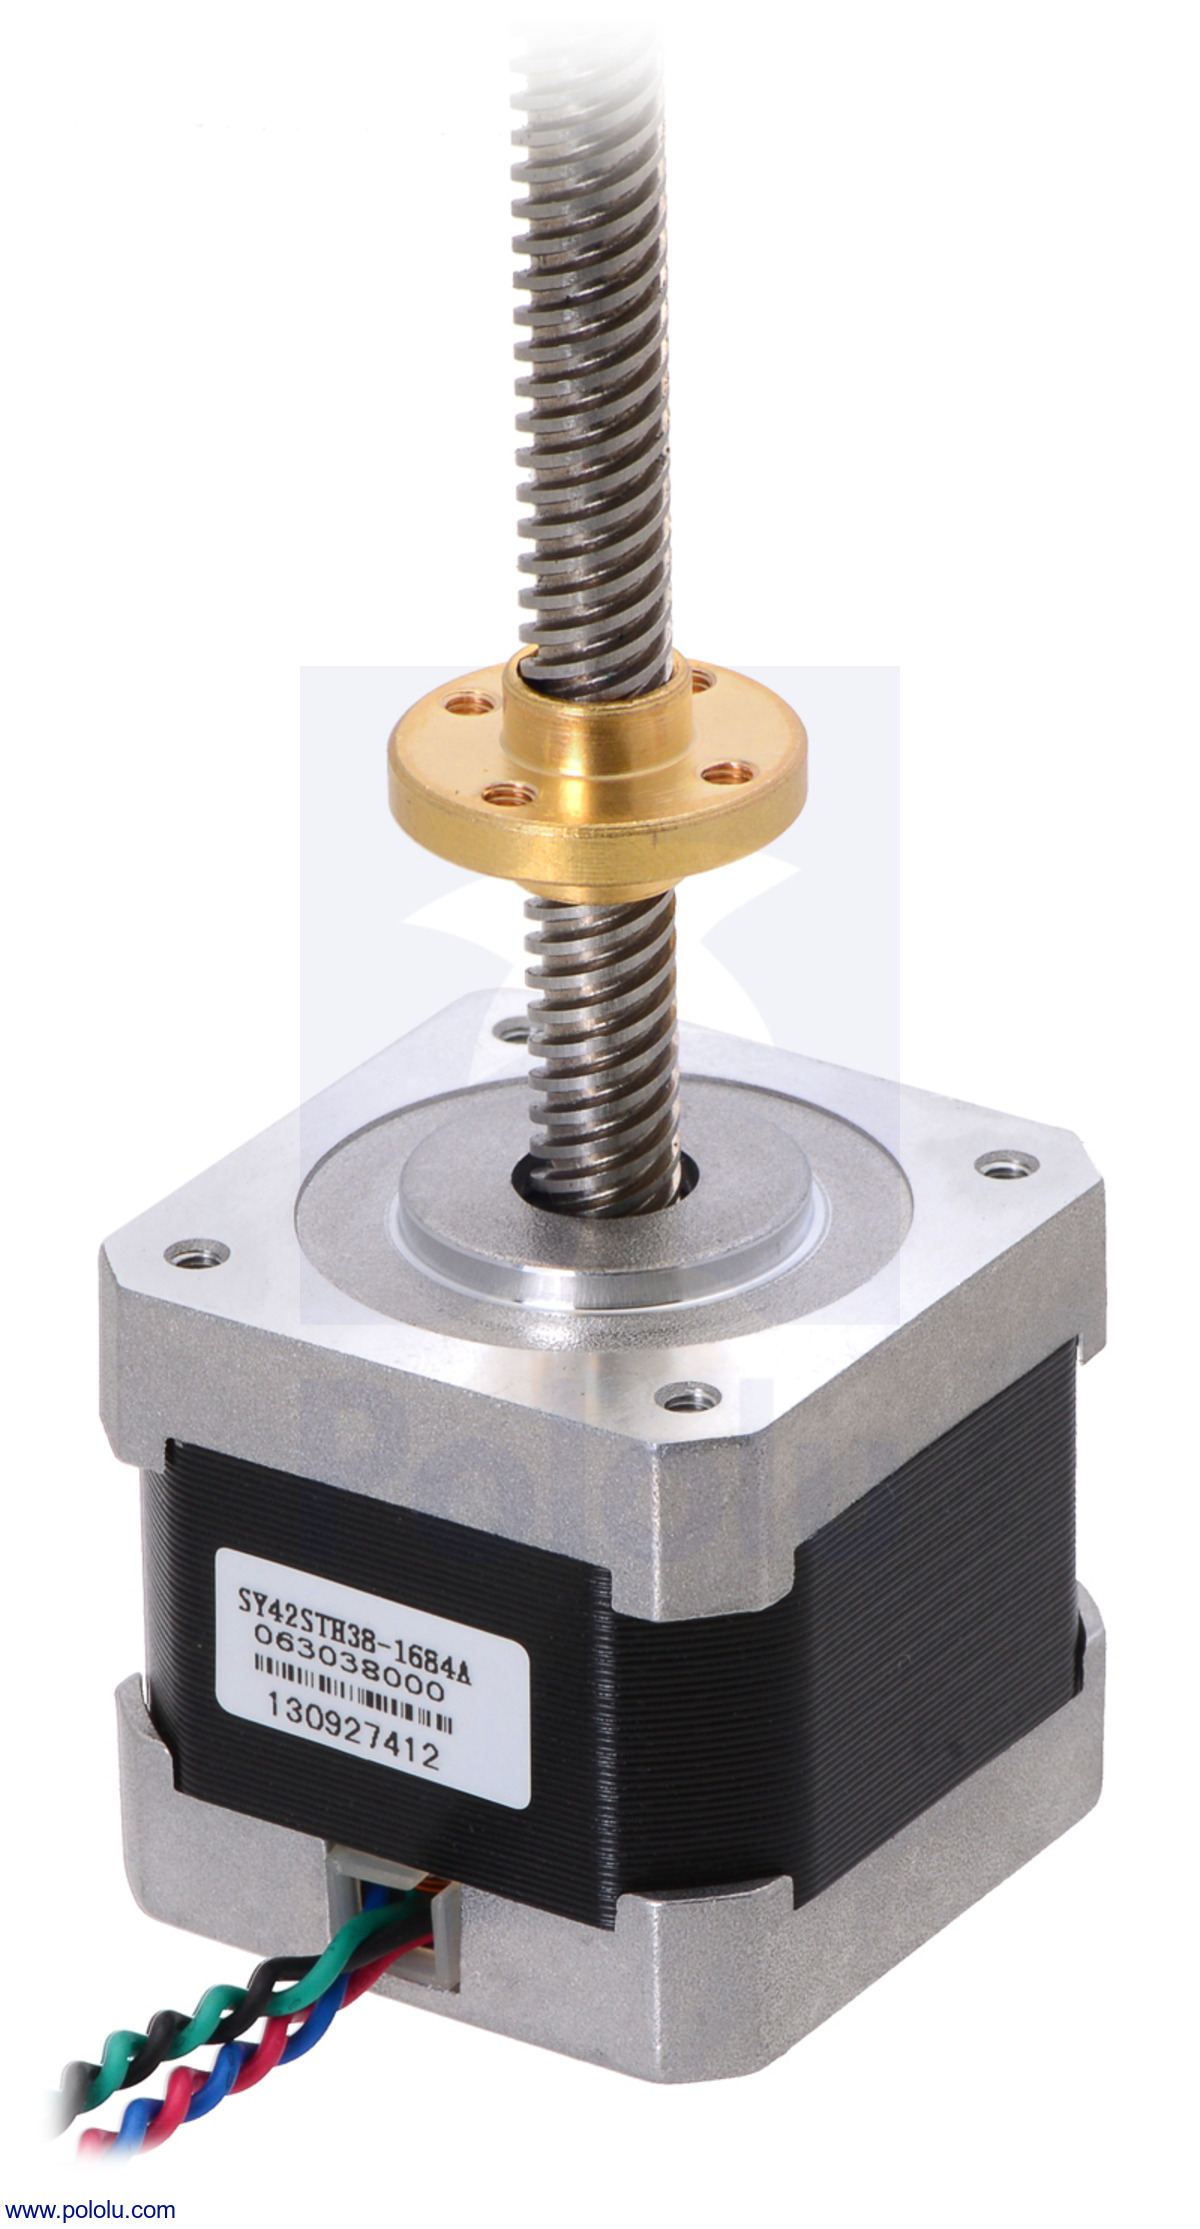 Threaded rod stepper motor